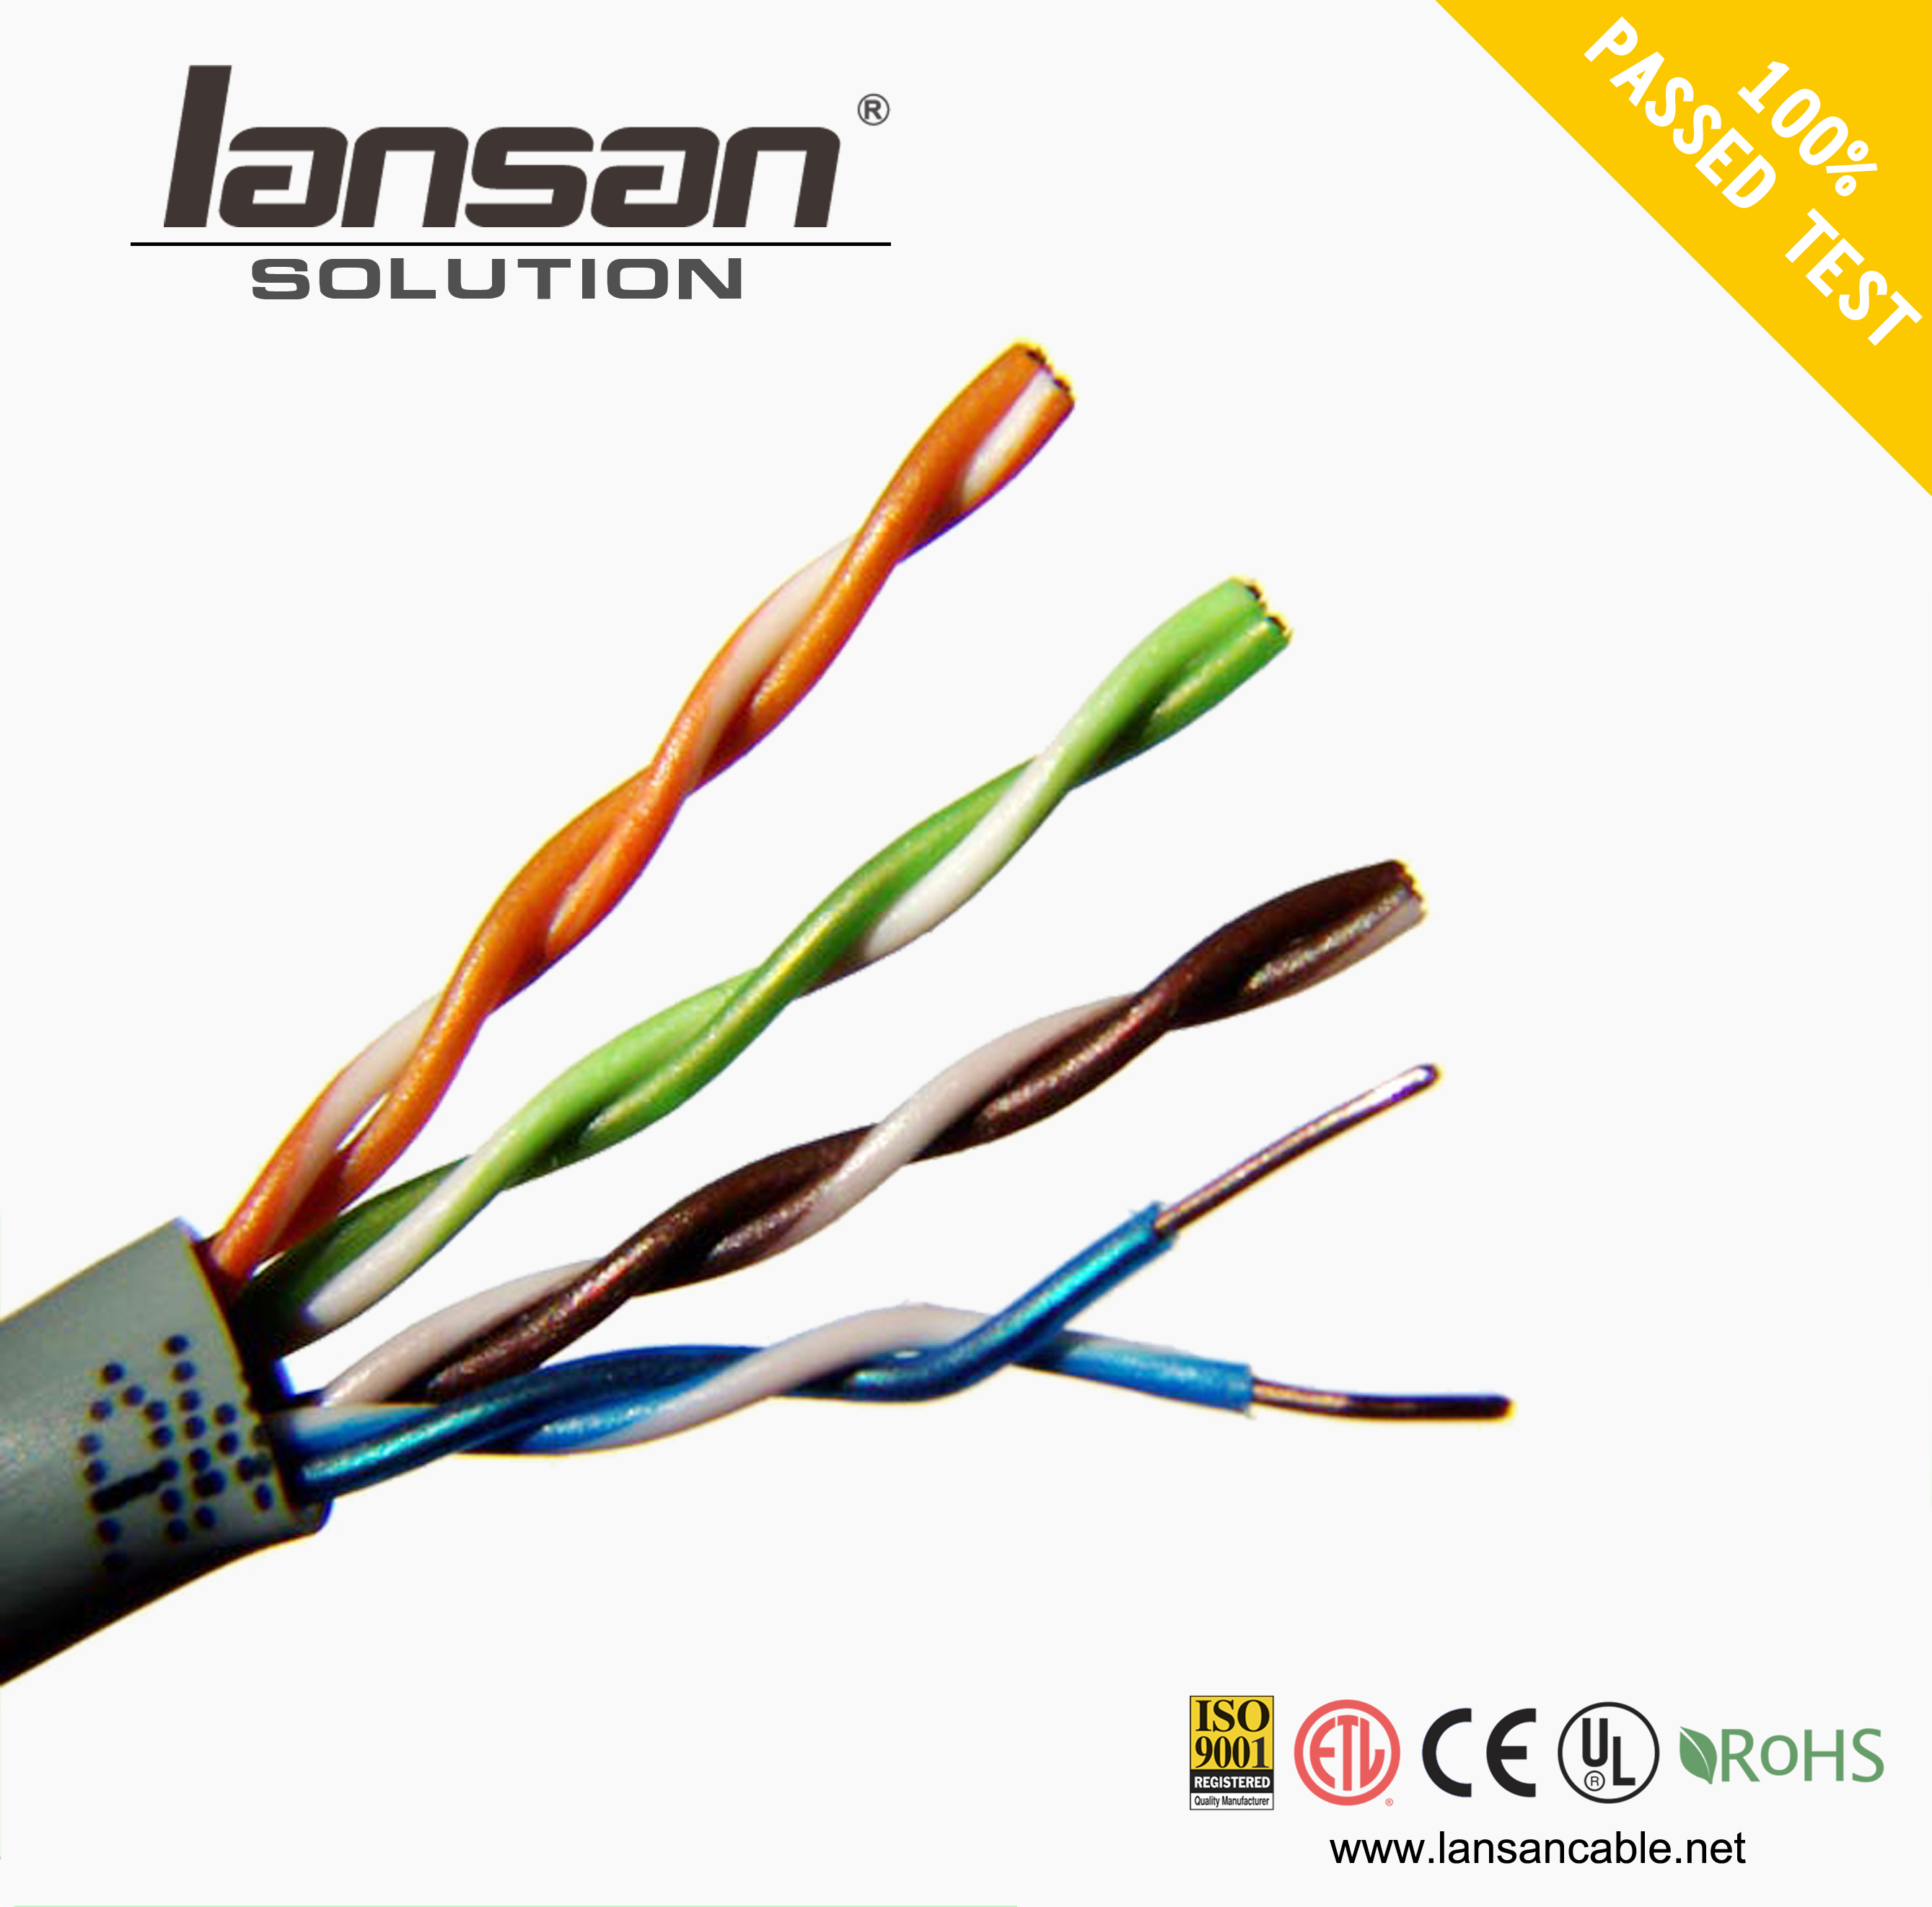 Solid Bare Copper 4 Pairs Awg24 Awg23 Utp Cat5e Cat6 Lan Ethernet Cat 5e Patch Cables Flexible Wire With Conductor Cable